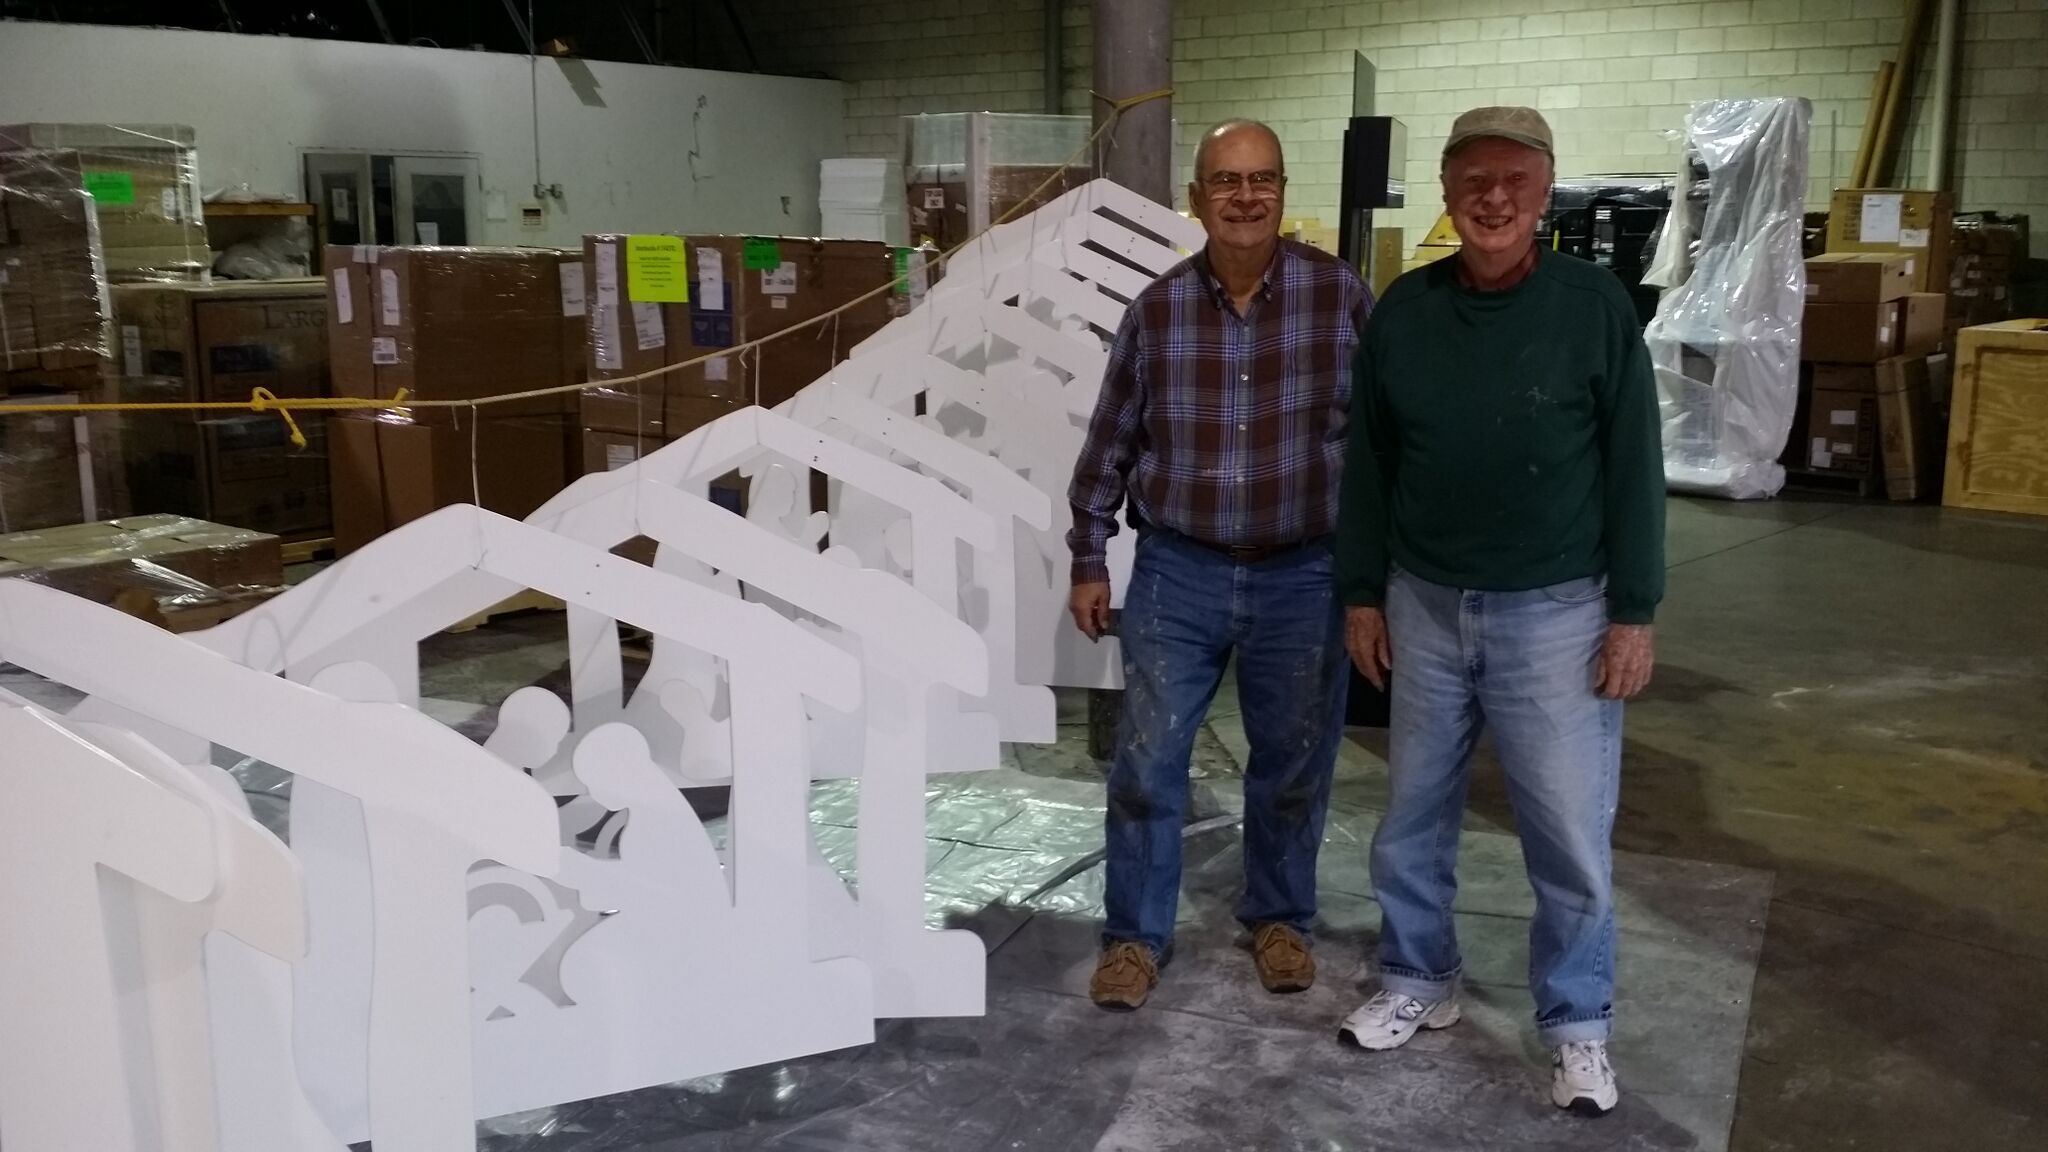 Roy Ambler and John Quinn at Warehouse Paint Shop.jpg